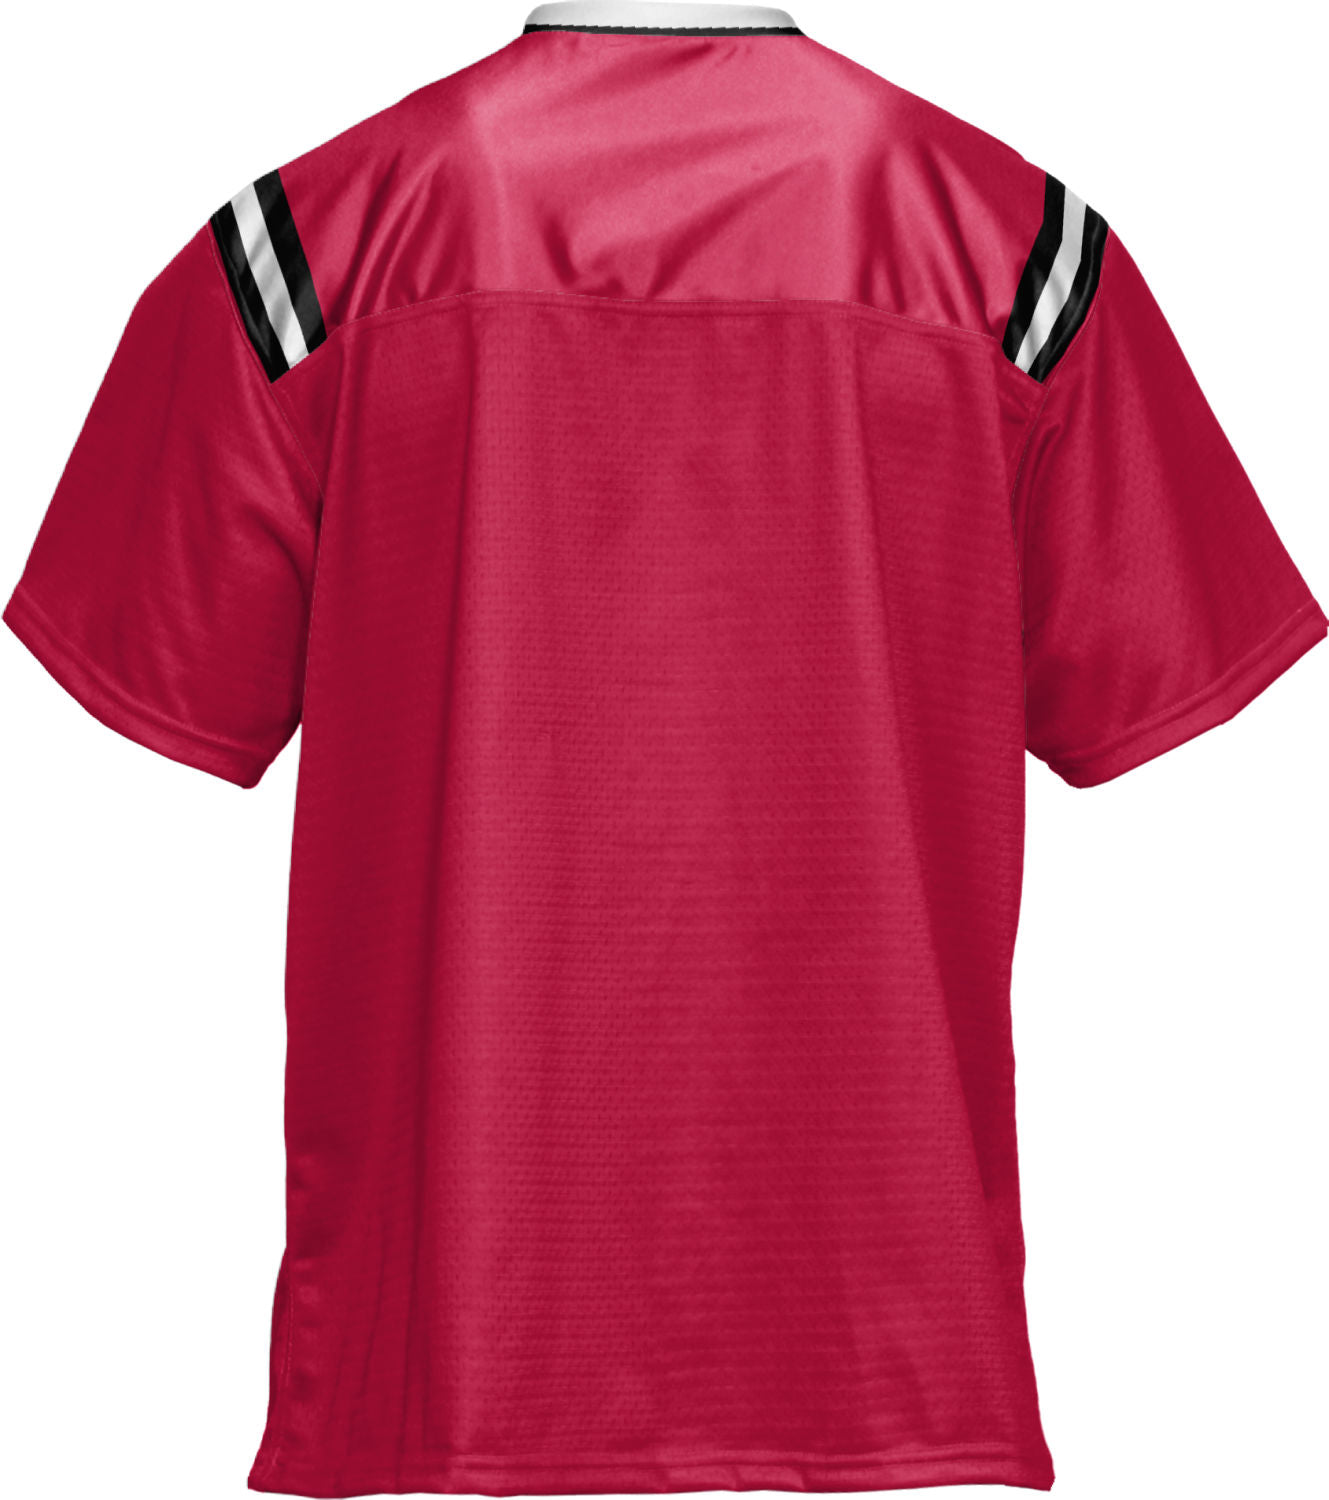 Southern Utah University Utah: Men's Football Fan Jersey - Goal Line